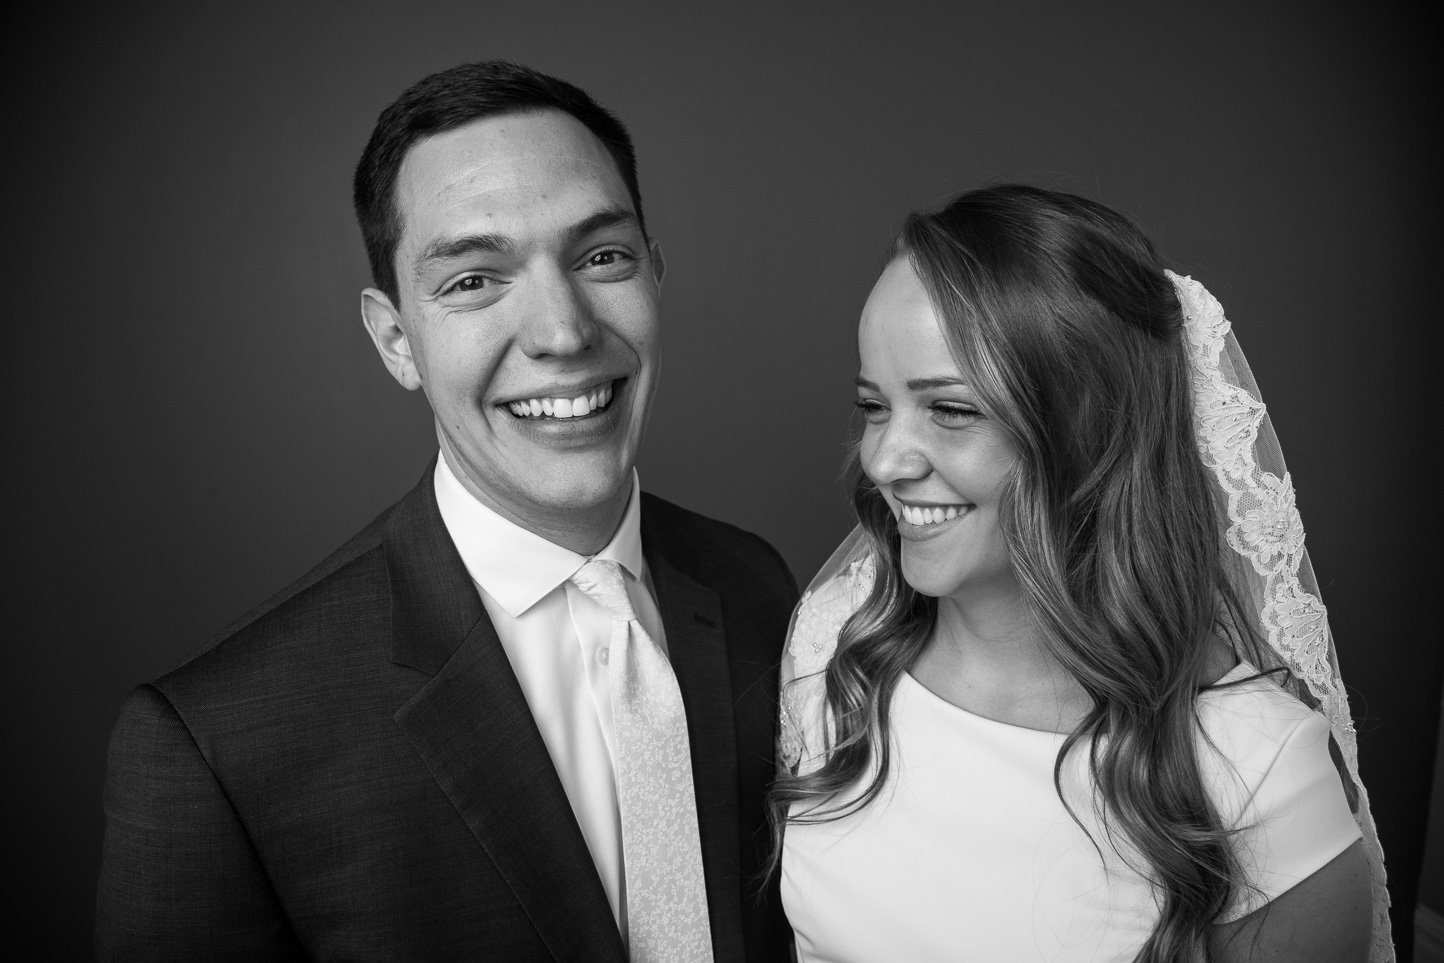 provo-wedding-photographers-7123.jpg